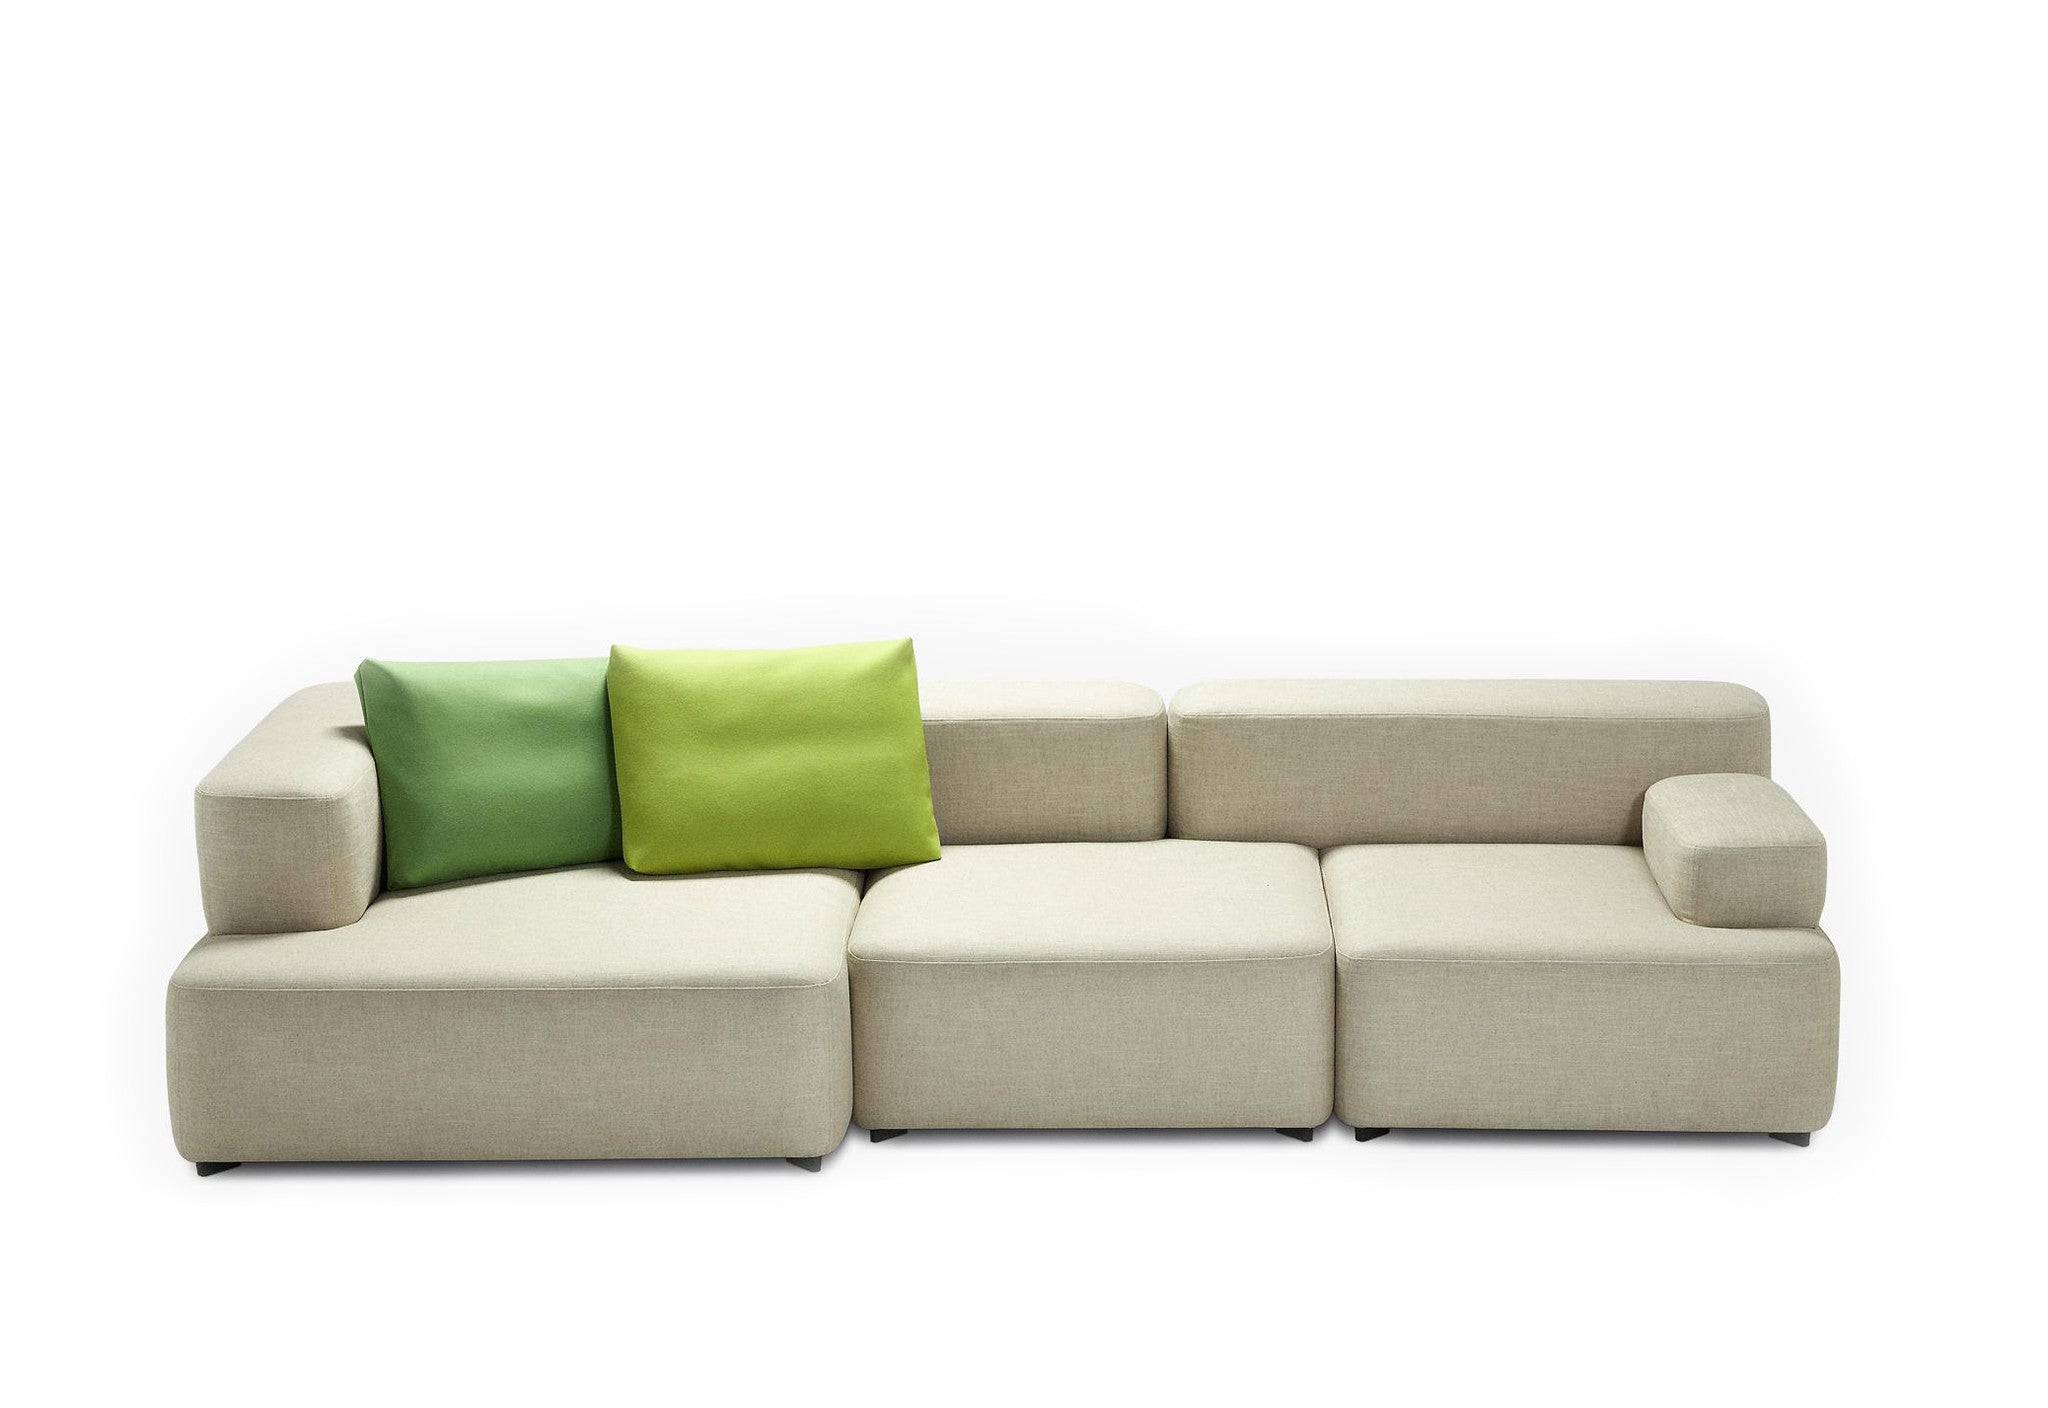 Alphabet sofa PL300 3 seater